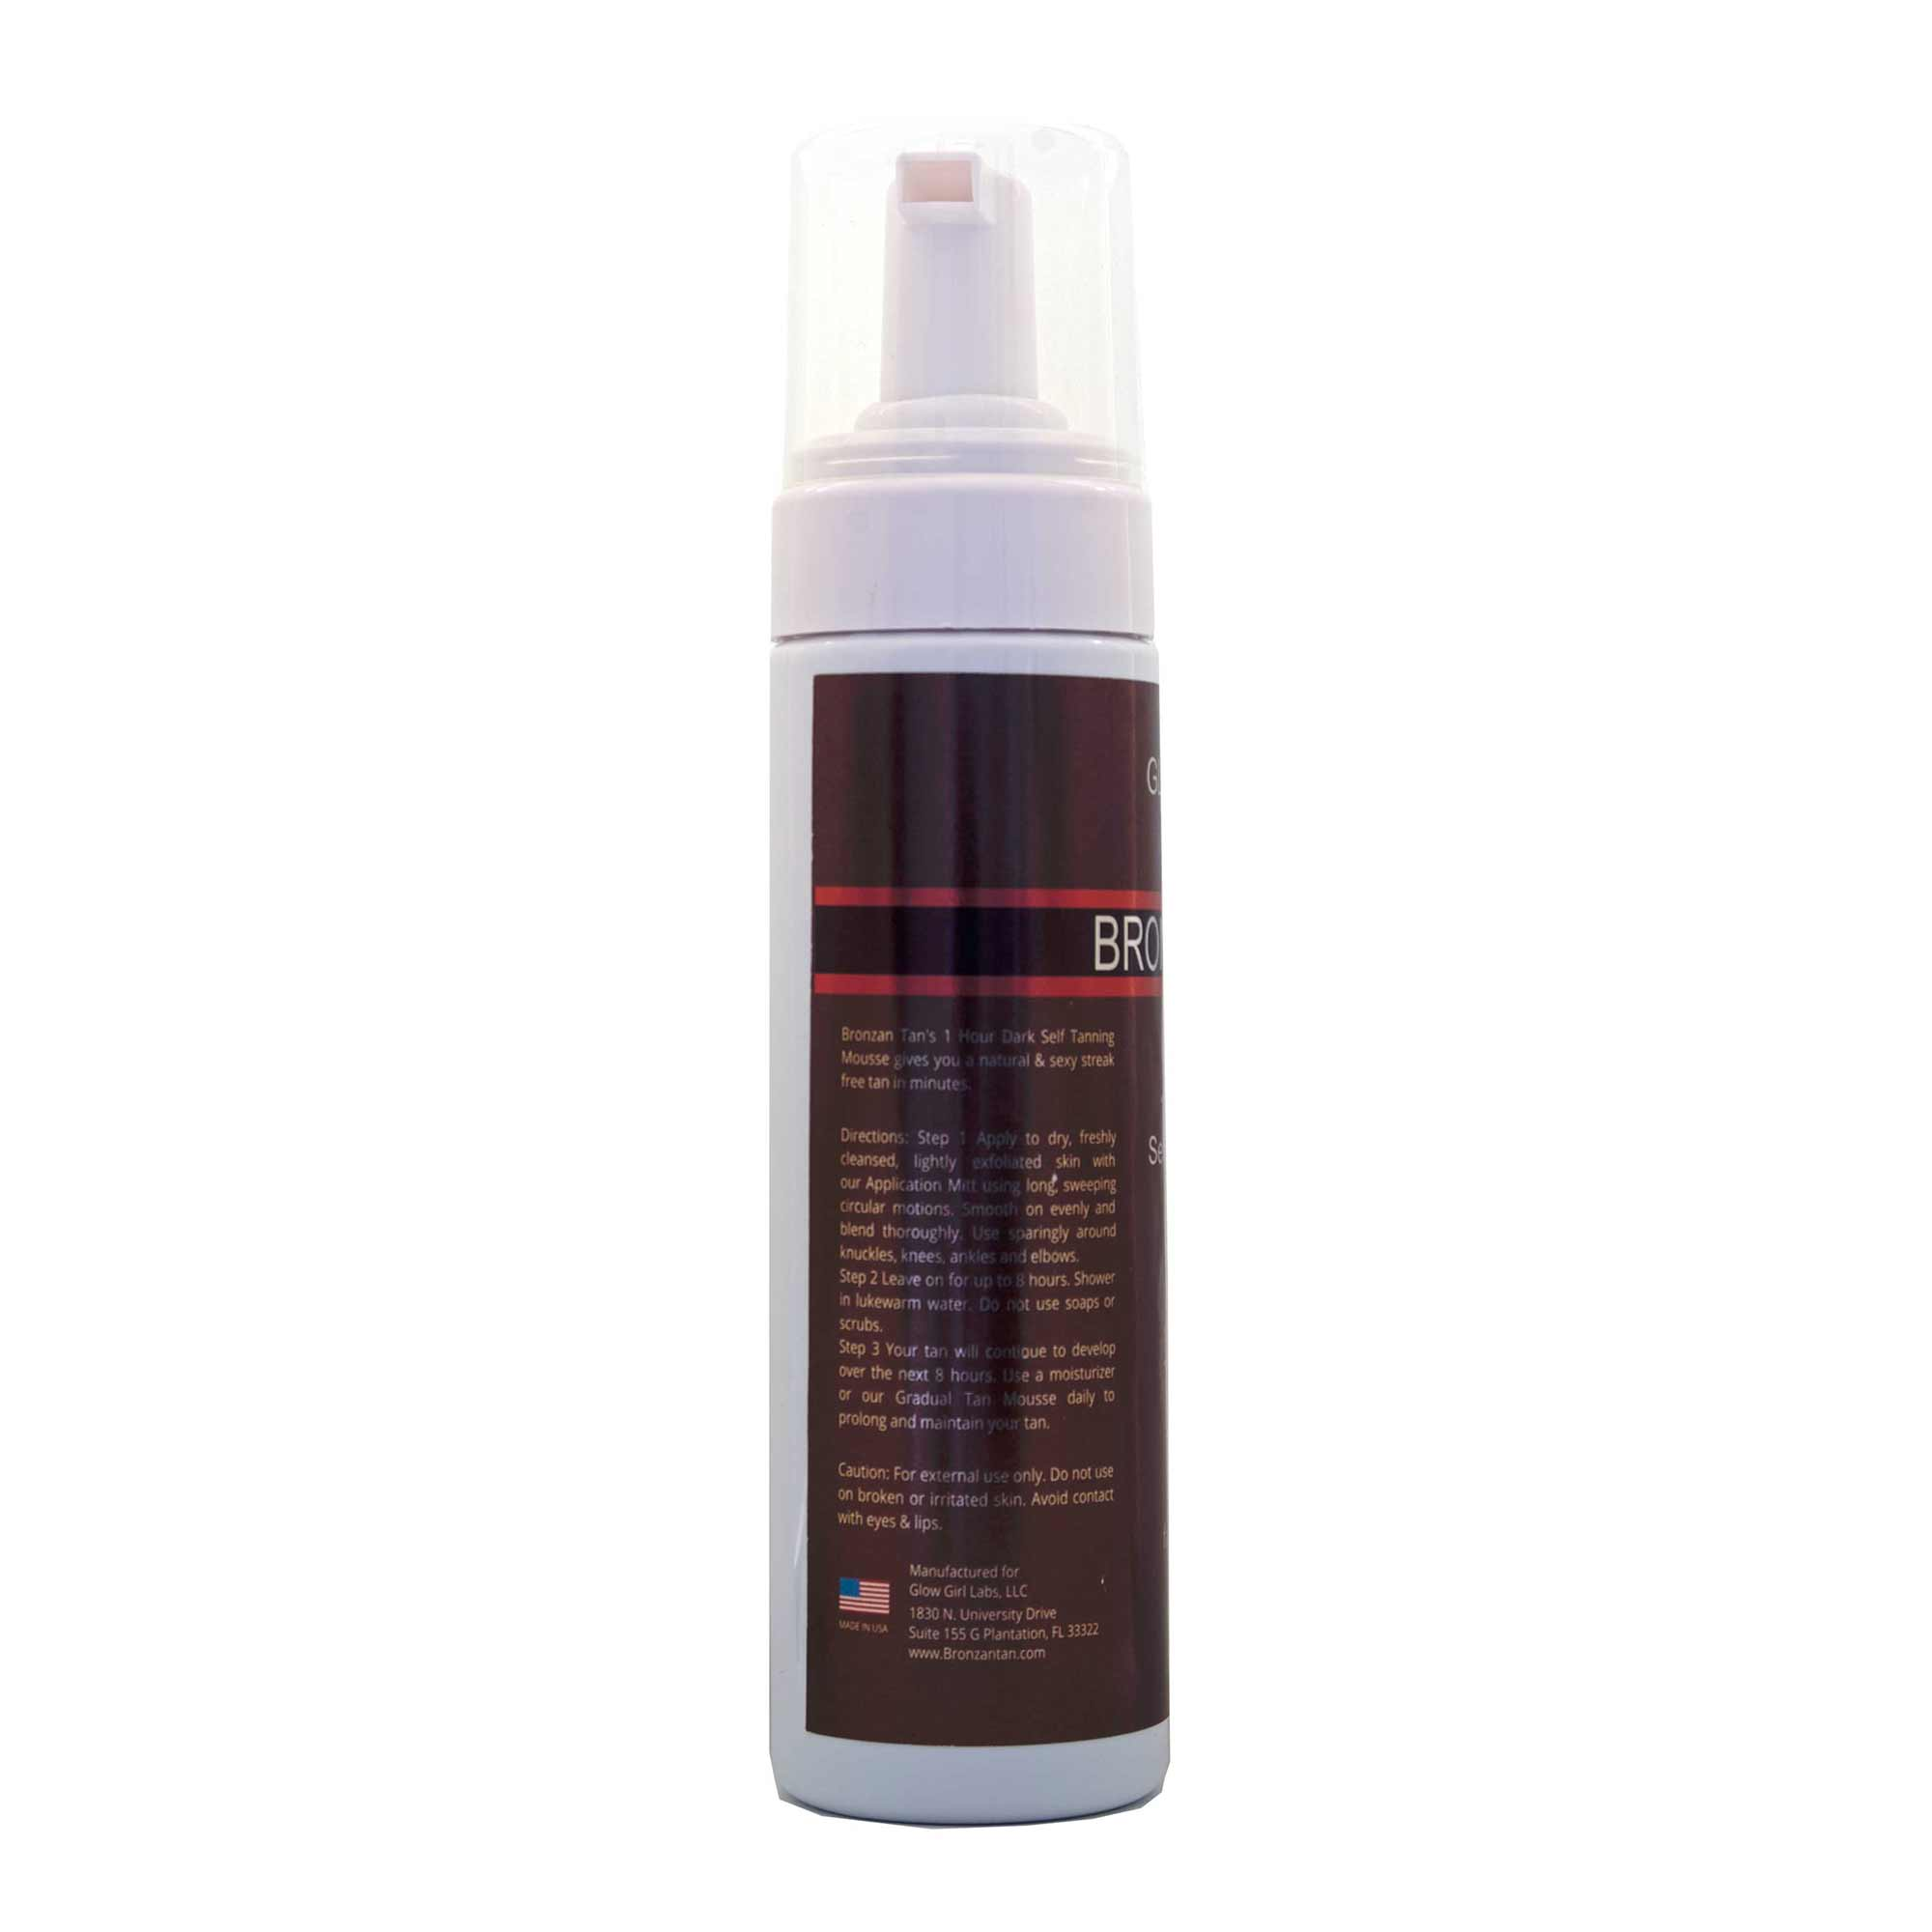 BRONZAN TAN 1 HOUR DARK SELF TAN MOUSSE - 6.7 OZ - BRONZAN TAN